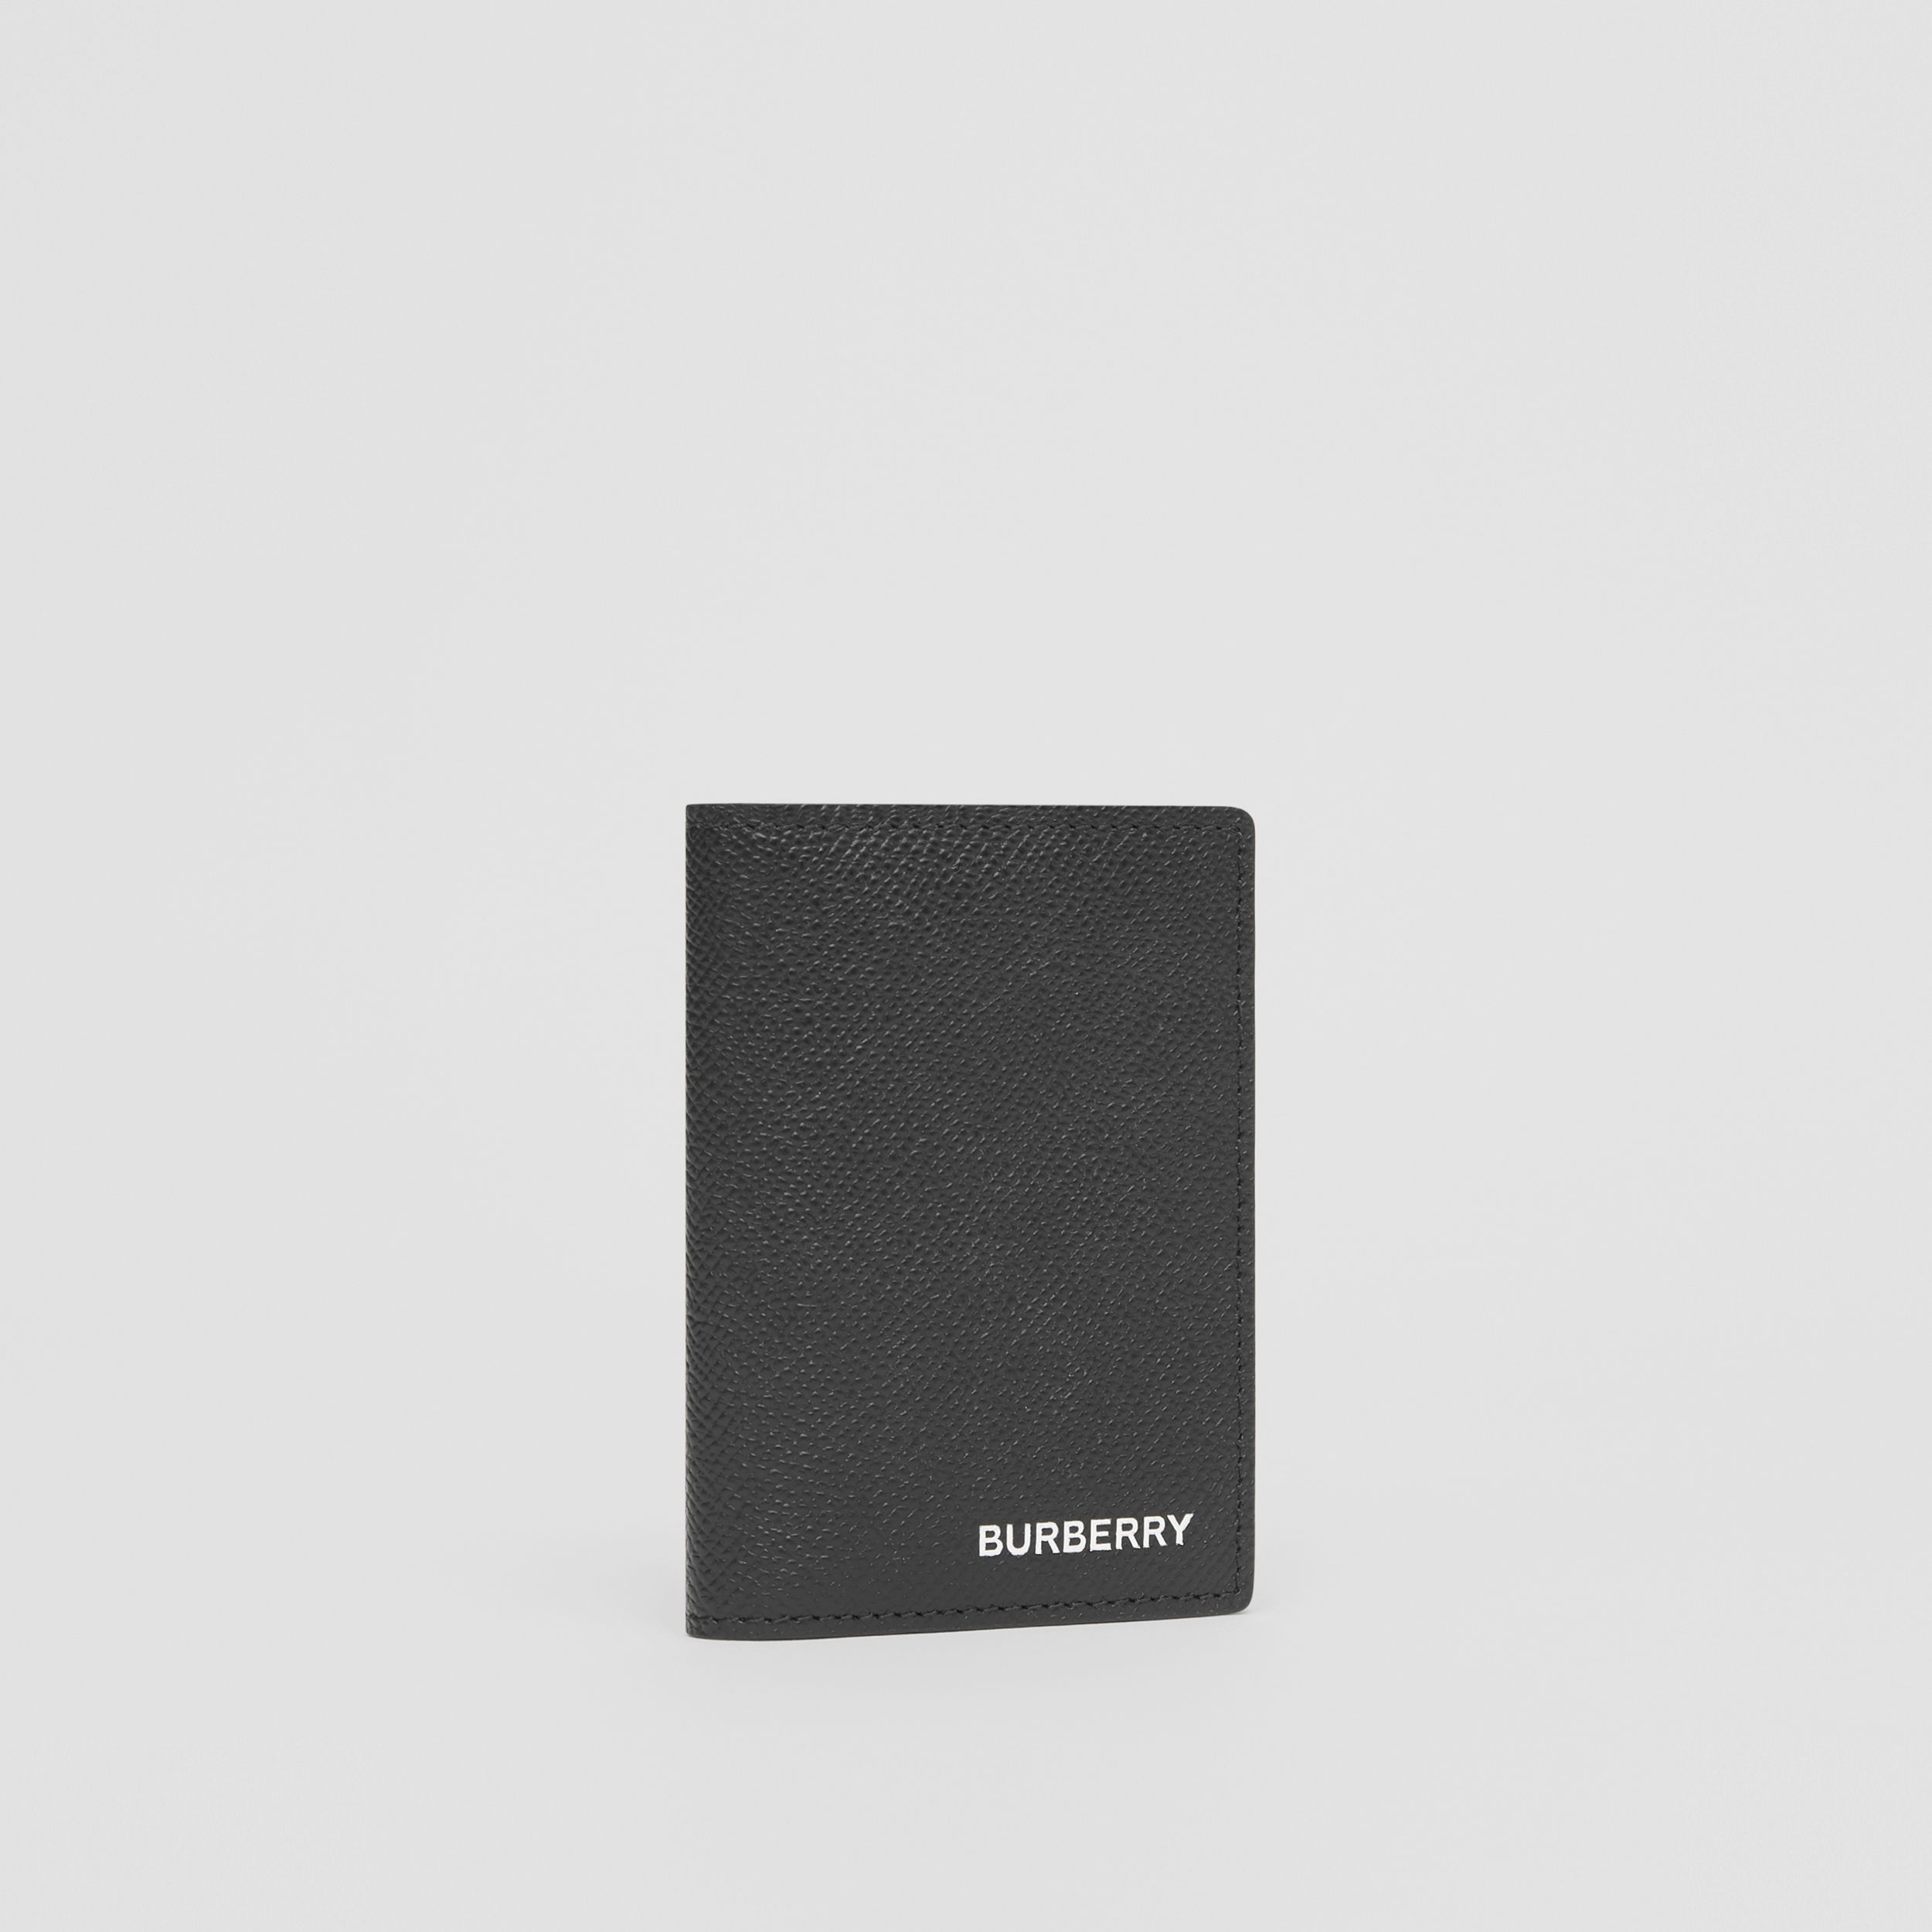 Grainy Leather Folding Card Case in Black - Men | Burberry - 4